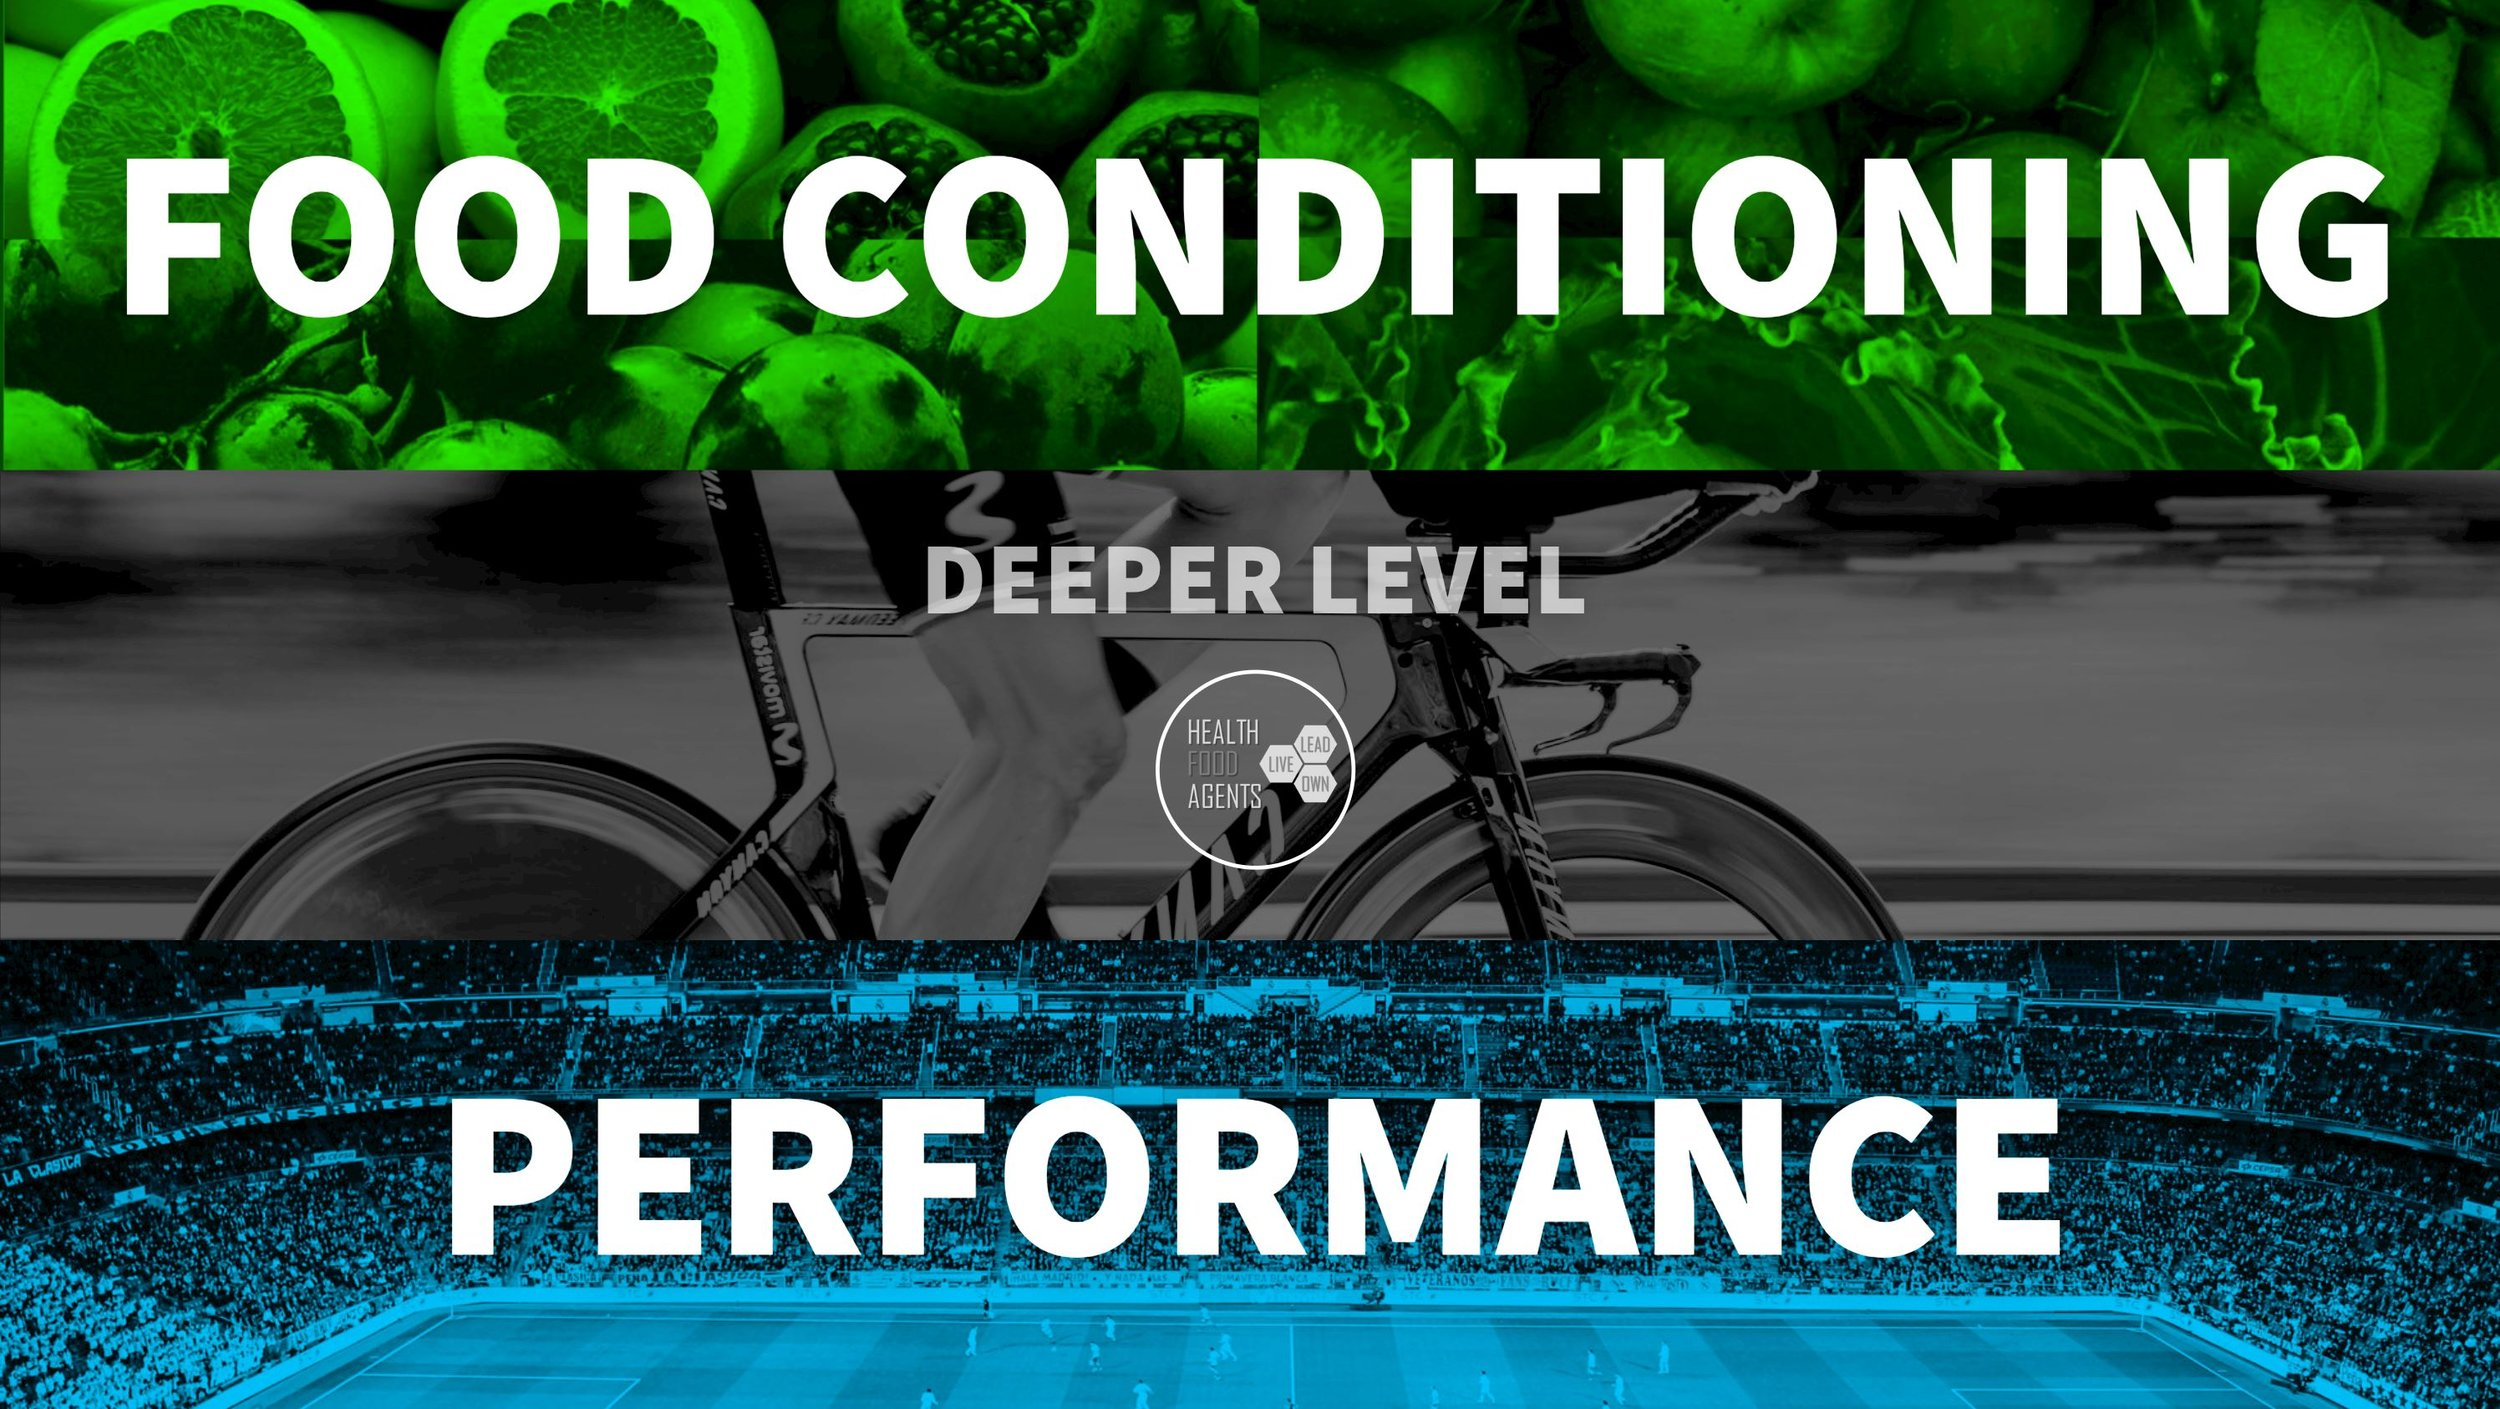 Food Conditioning deeper level Performance w-HFA.JPG